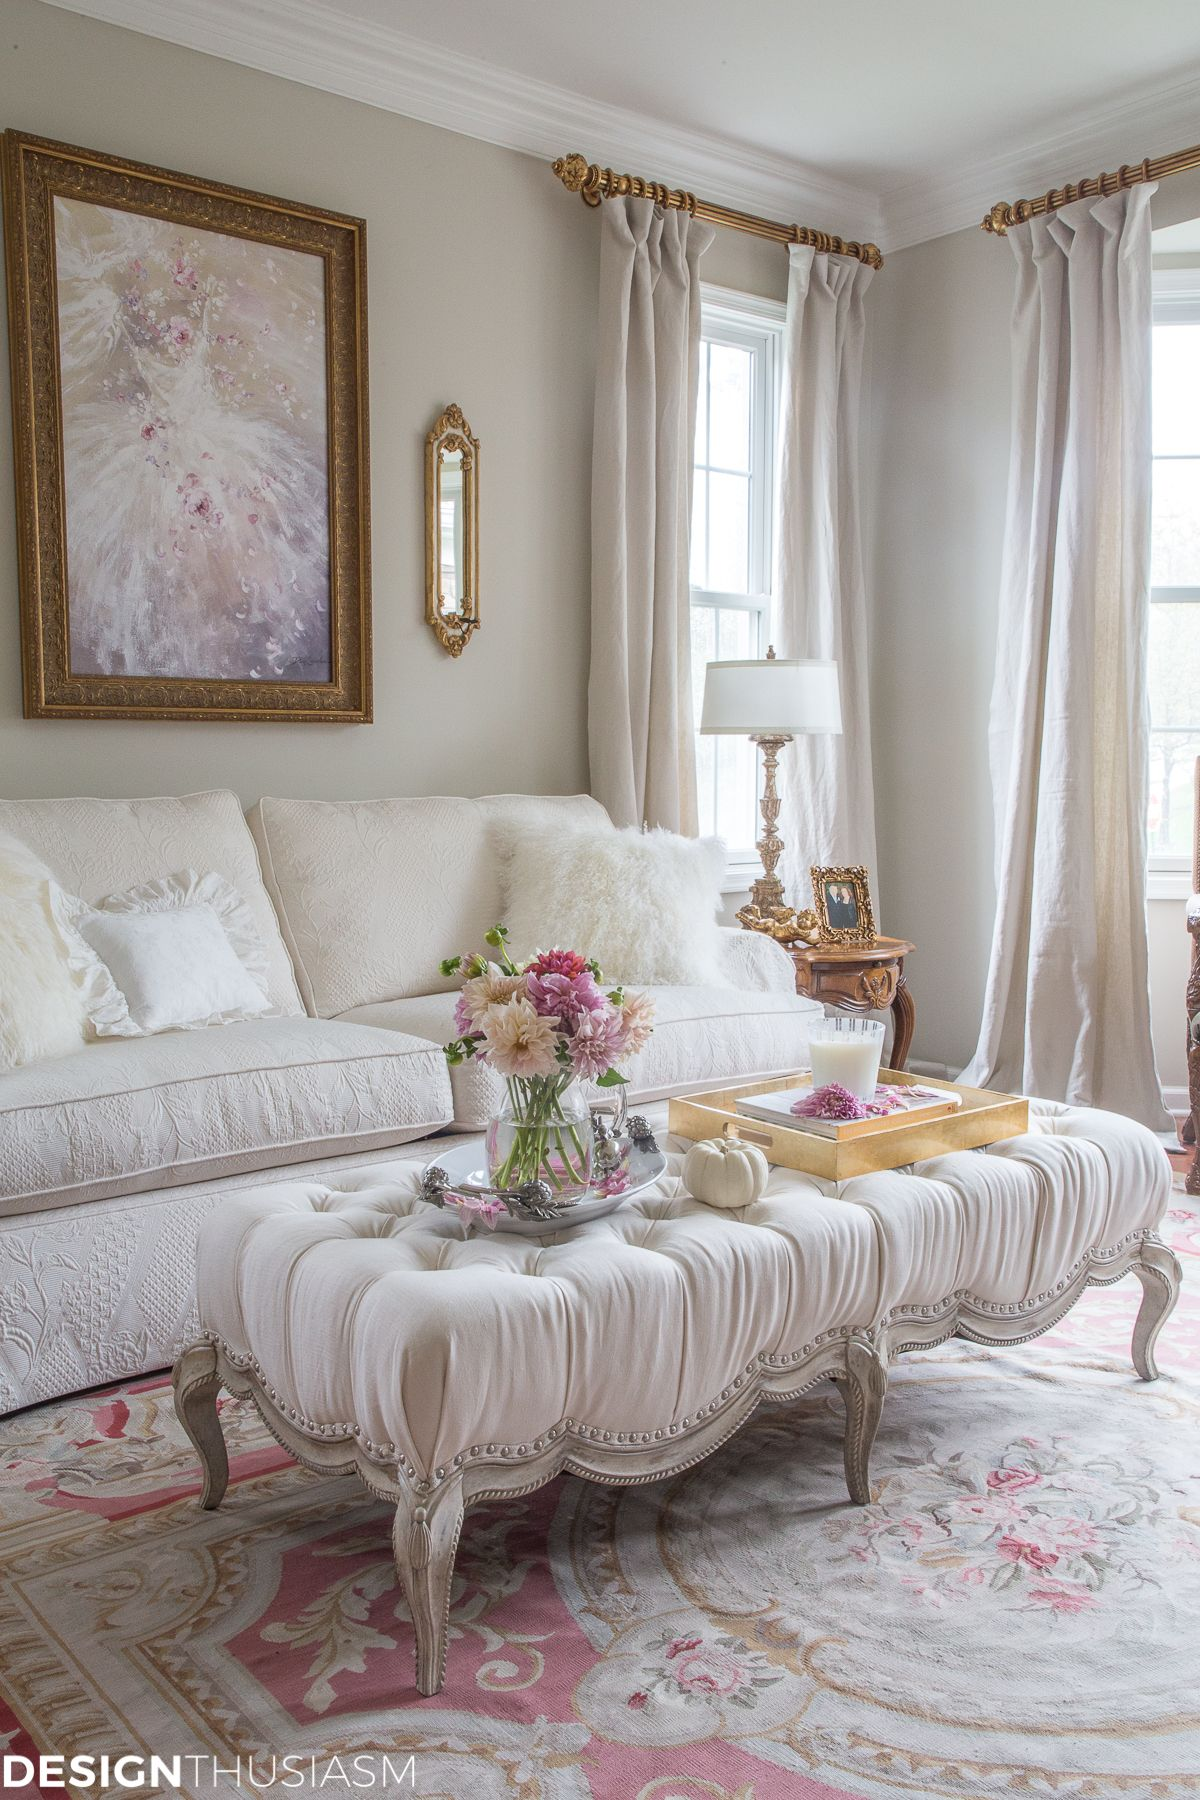 5 Affordable Room Makeovers How to Modernize French